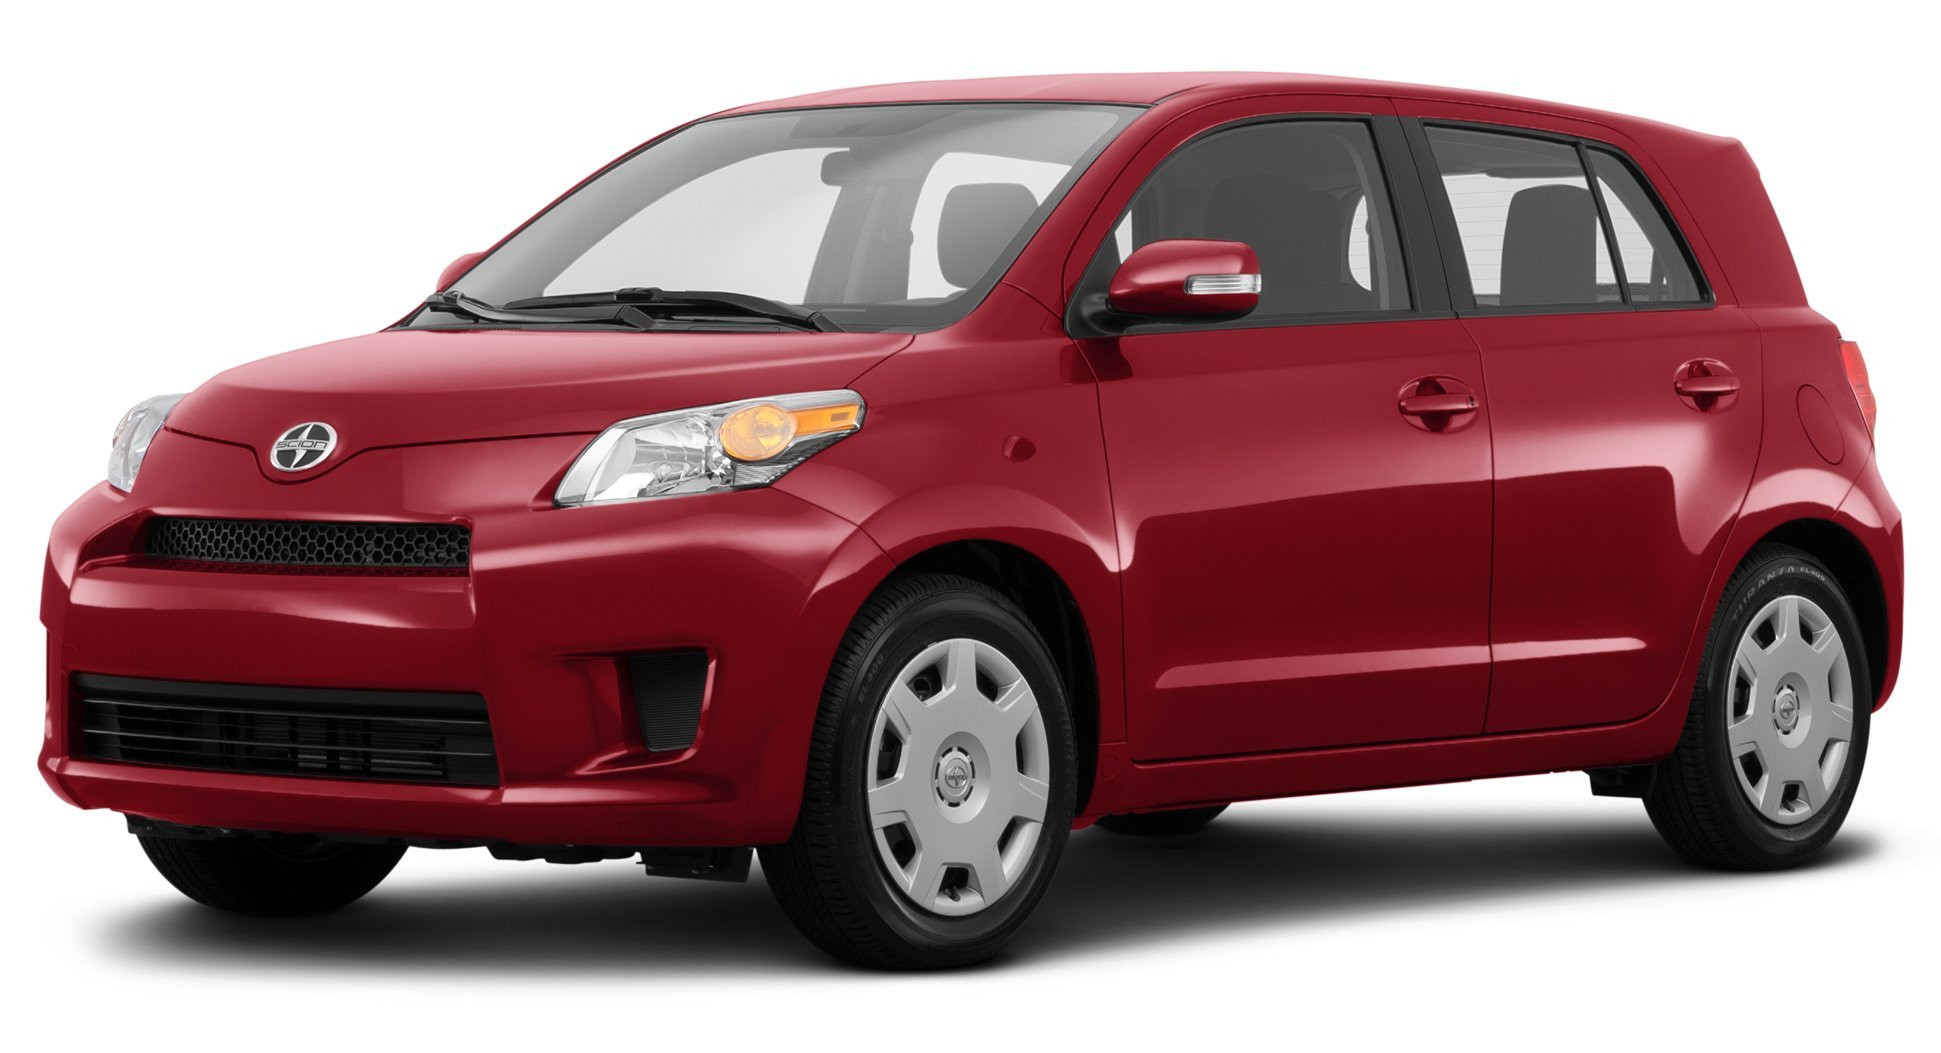 Amazon.com: 3 Scion xD Reviews, Images, and Specs: Vehicles